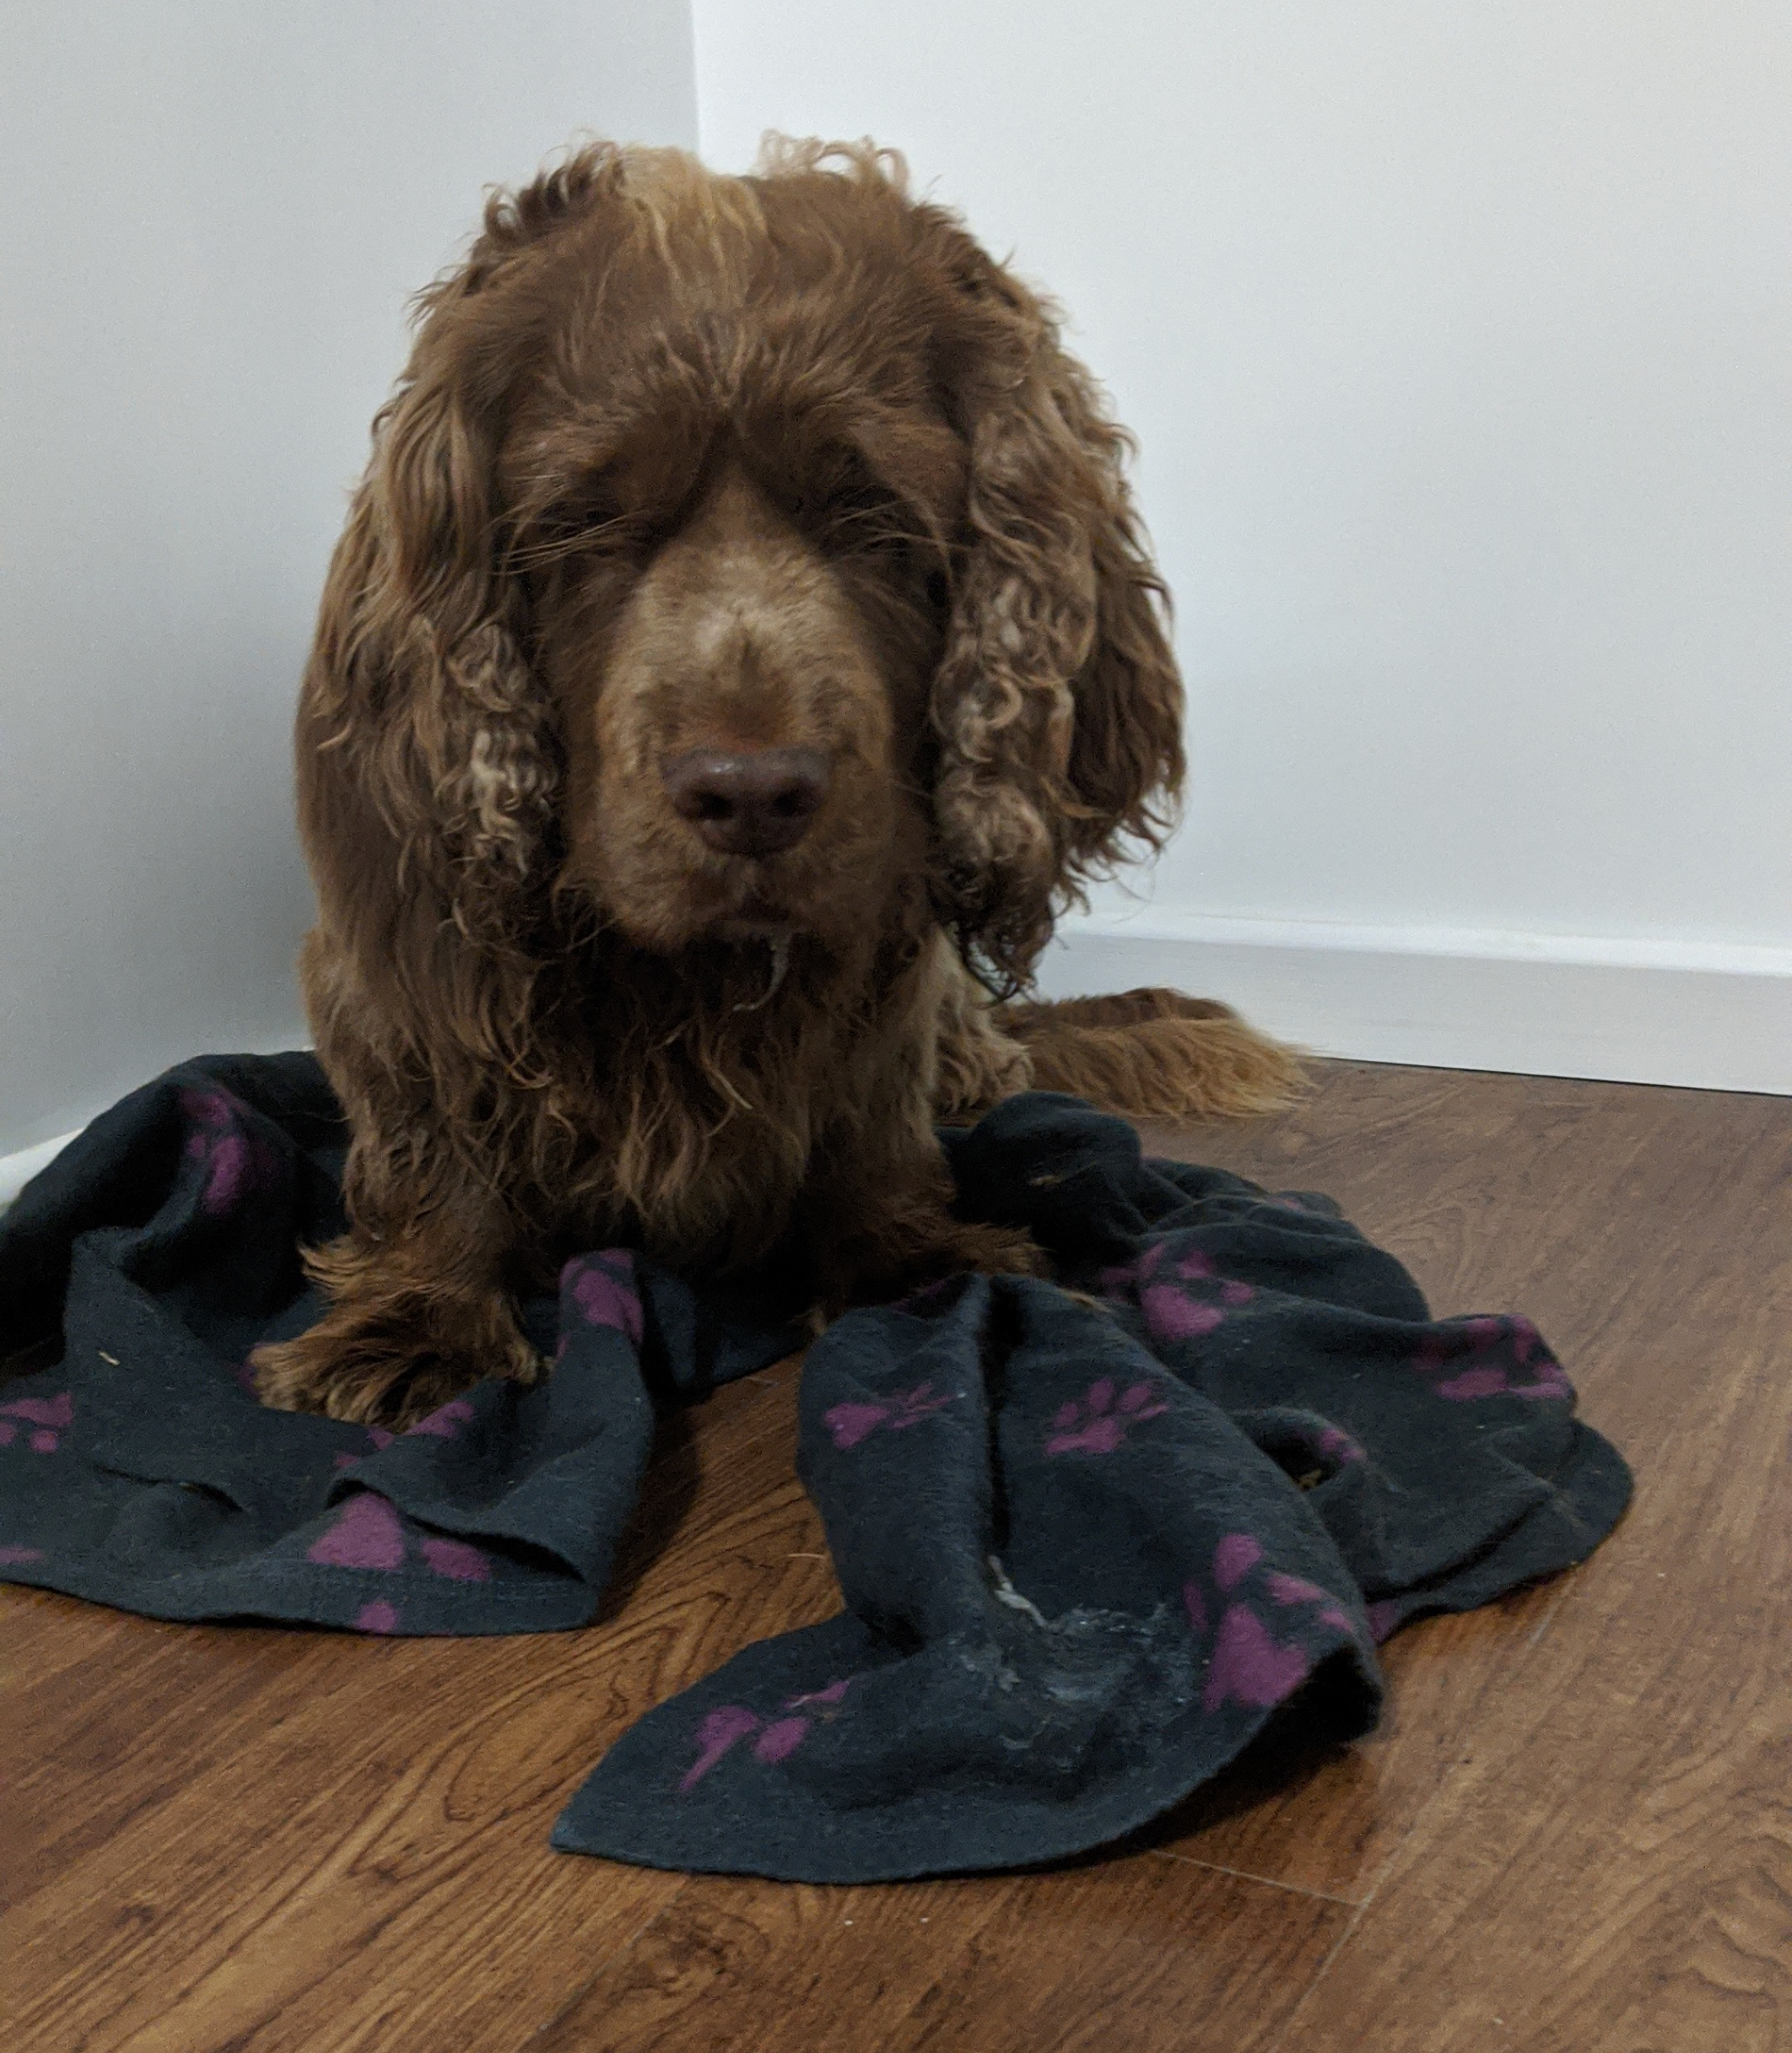 Sussex Spaniel sat on top of a blanket on a wooden floor.